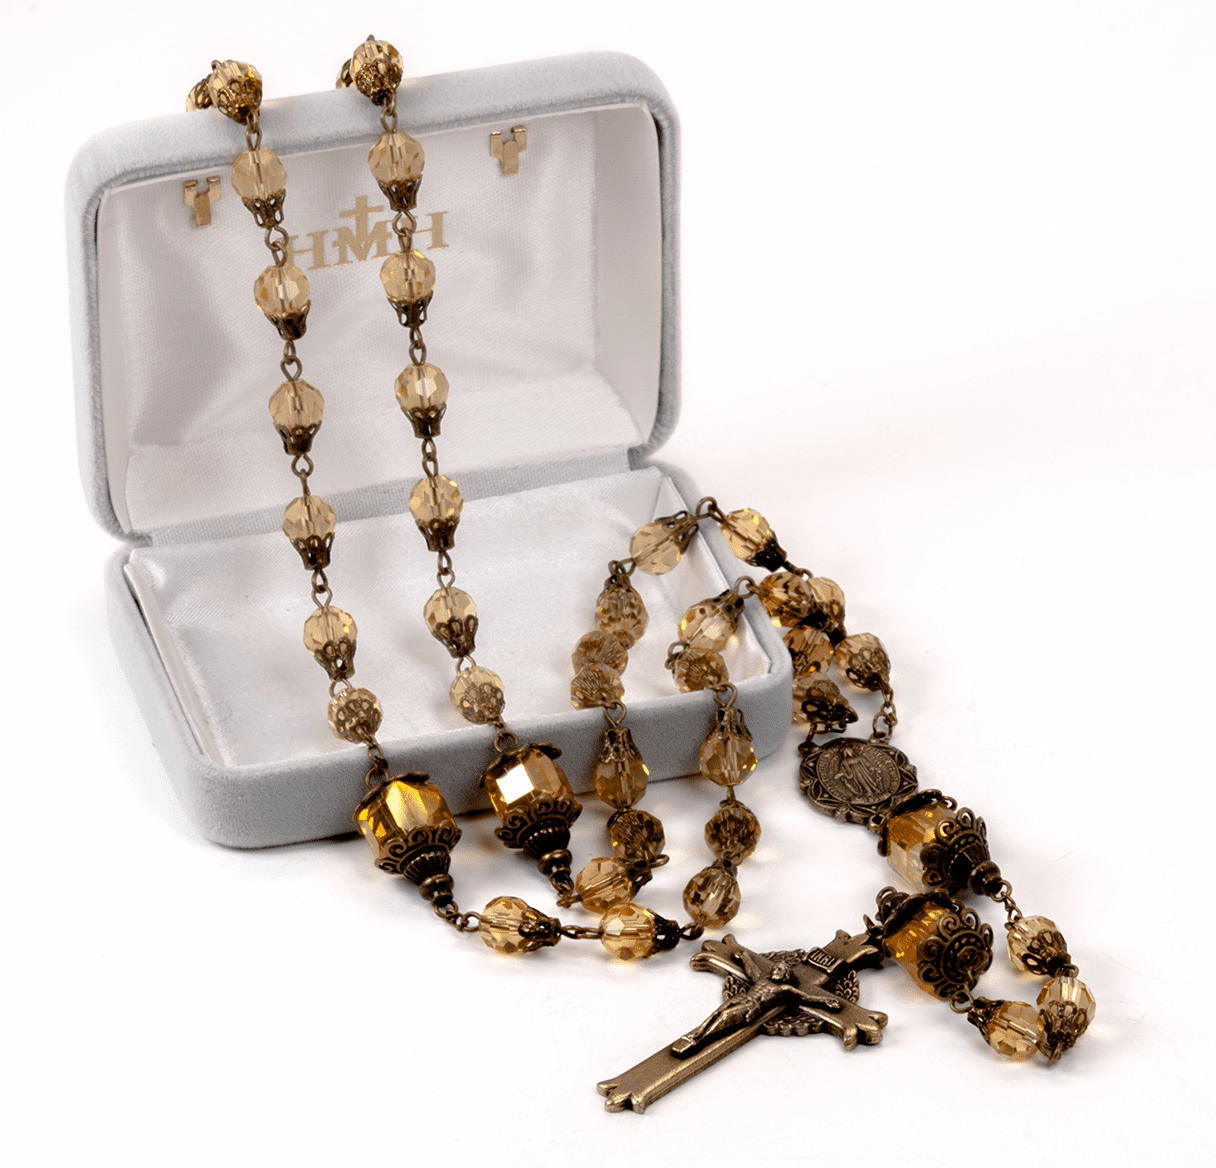 HMH Religious Mary Yellow Crystal Tear Drop Catholic Prayer Rosary